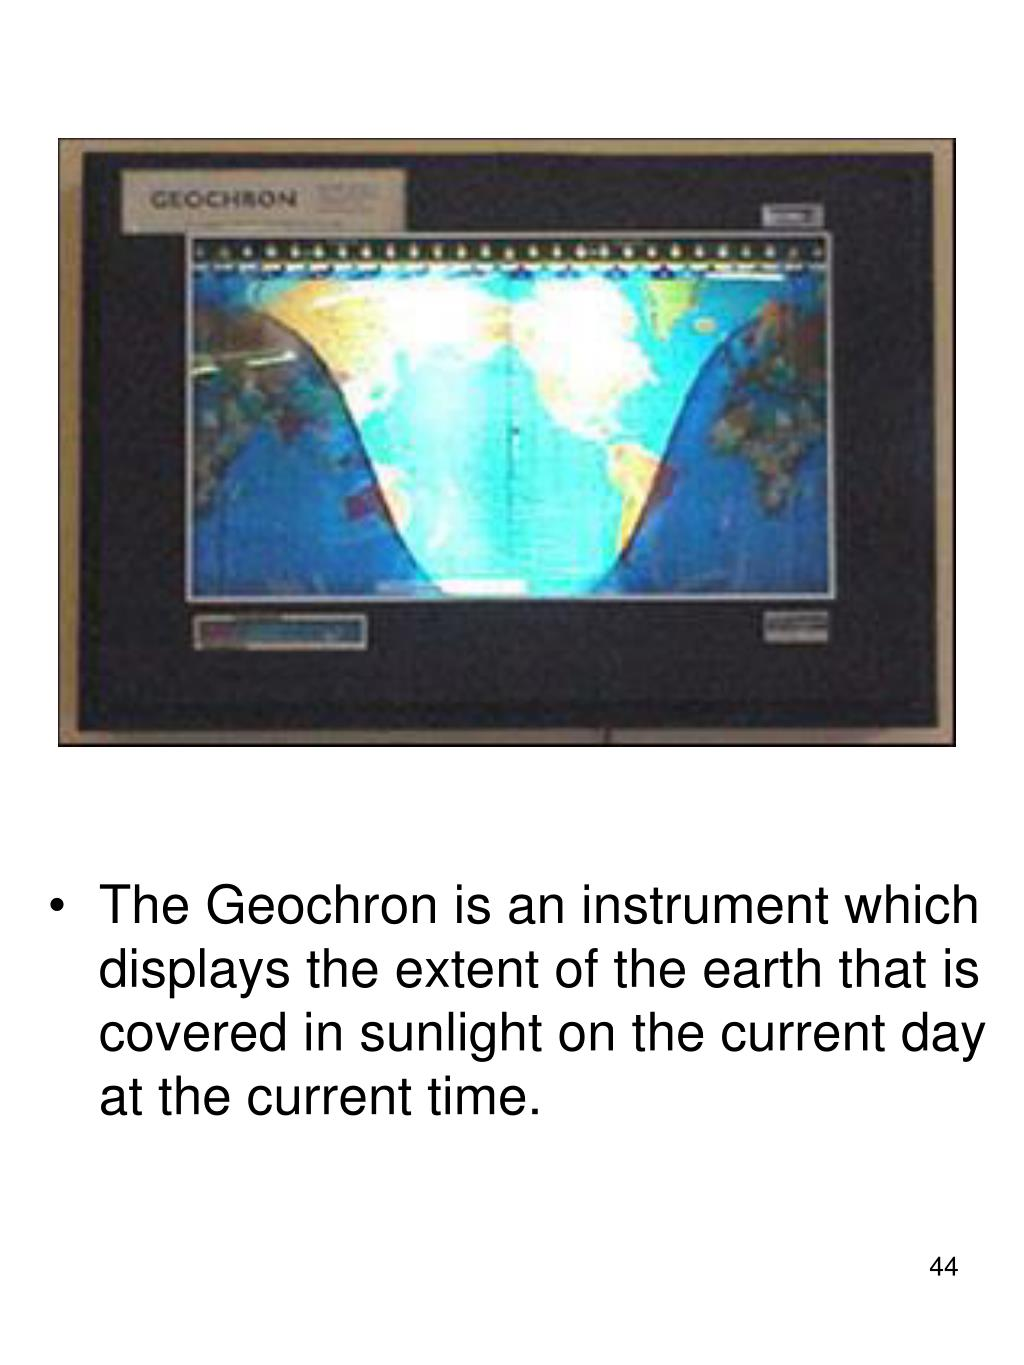 The Geochron is an instrument which displays the extent of the earth that is covered in sunlight on the current day at the current time.